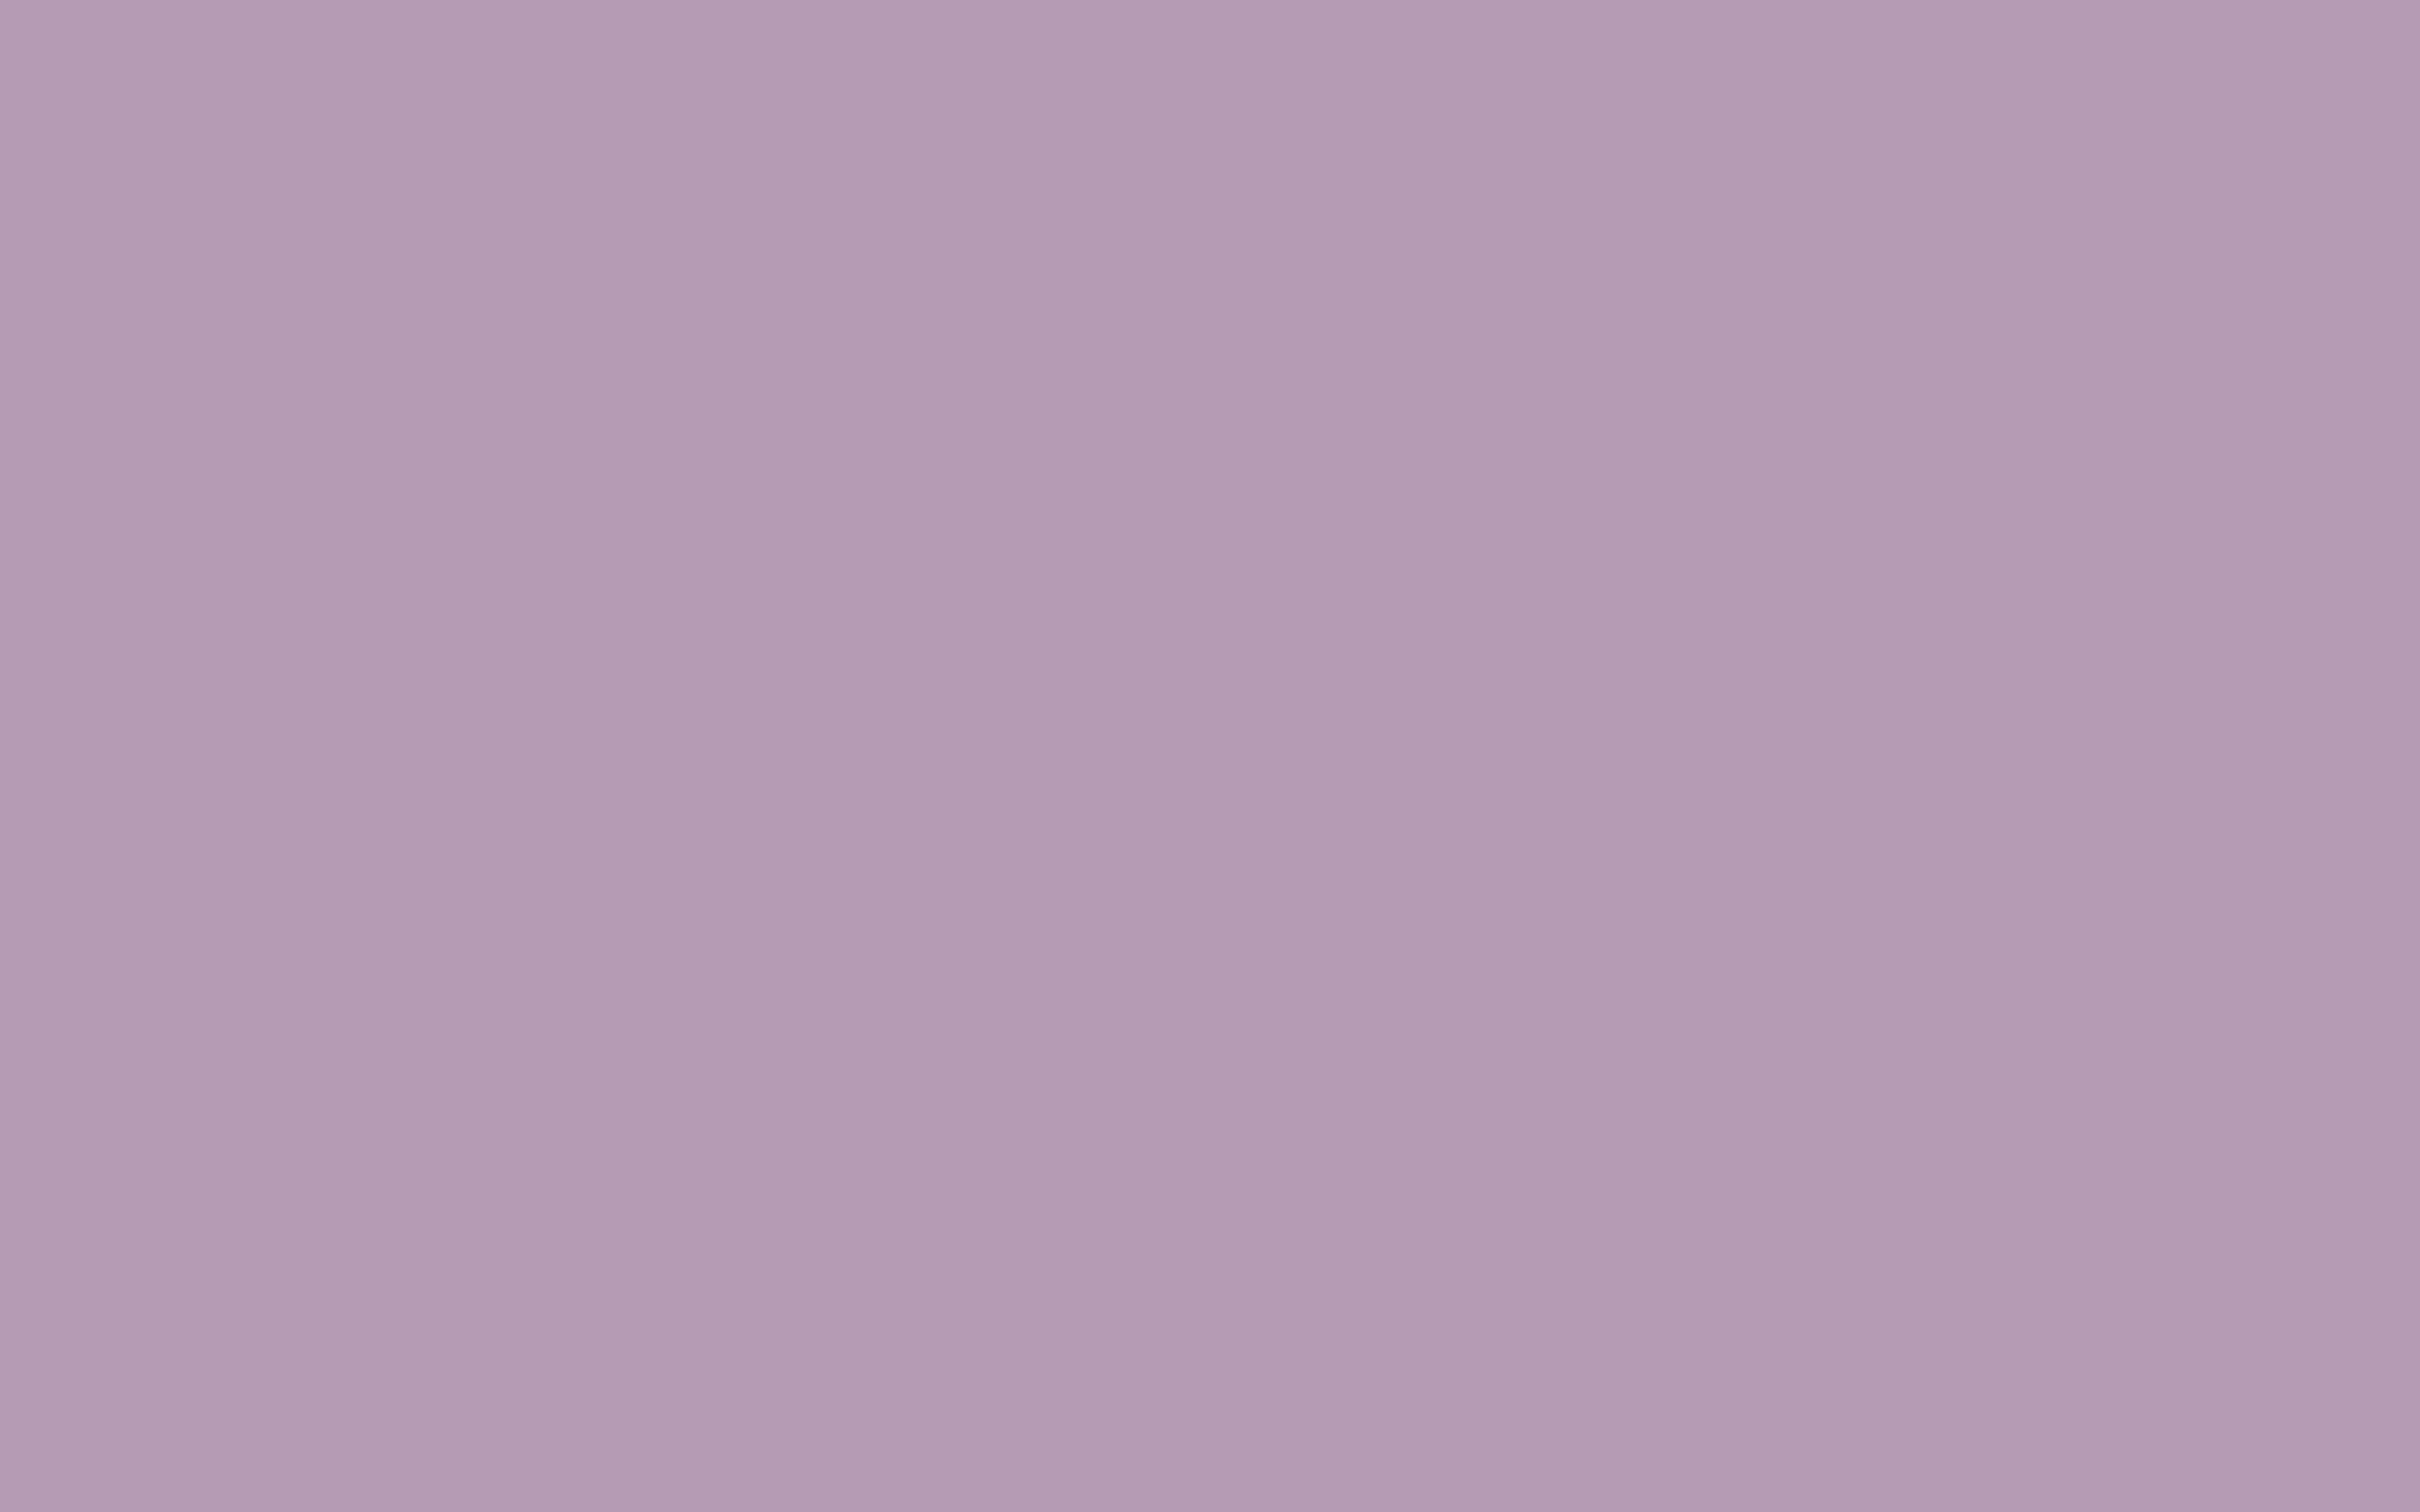 2560x1600 Pastel Purple Solid Color Background